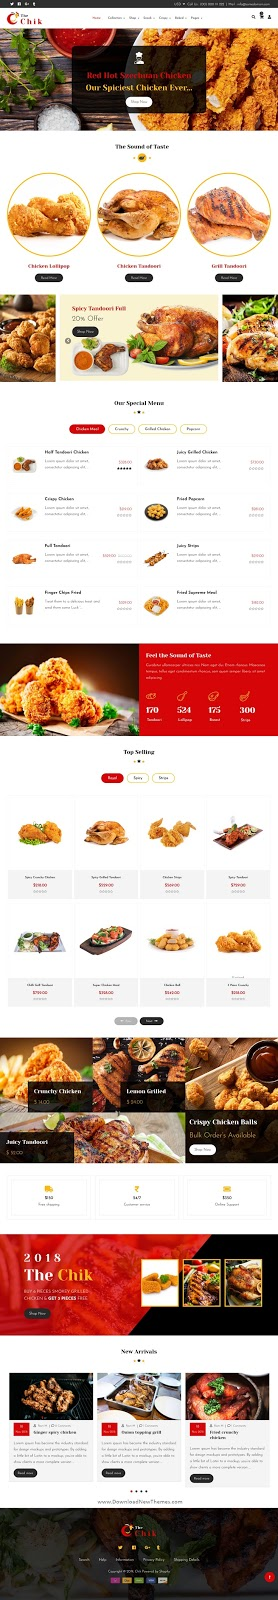 Food Shop, Restaurant Shopify Theme